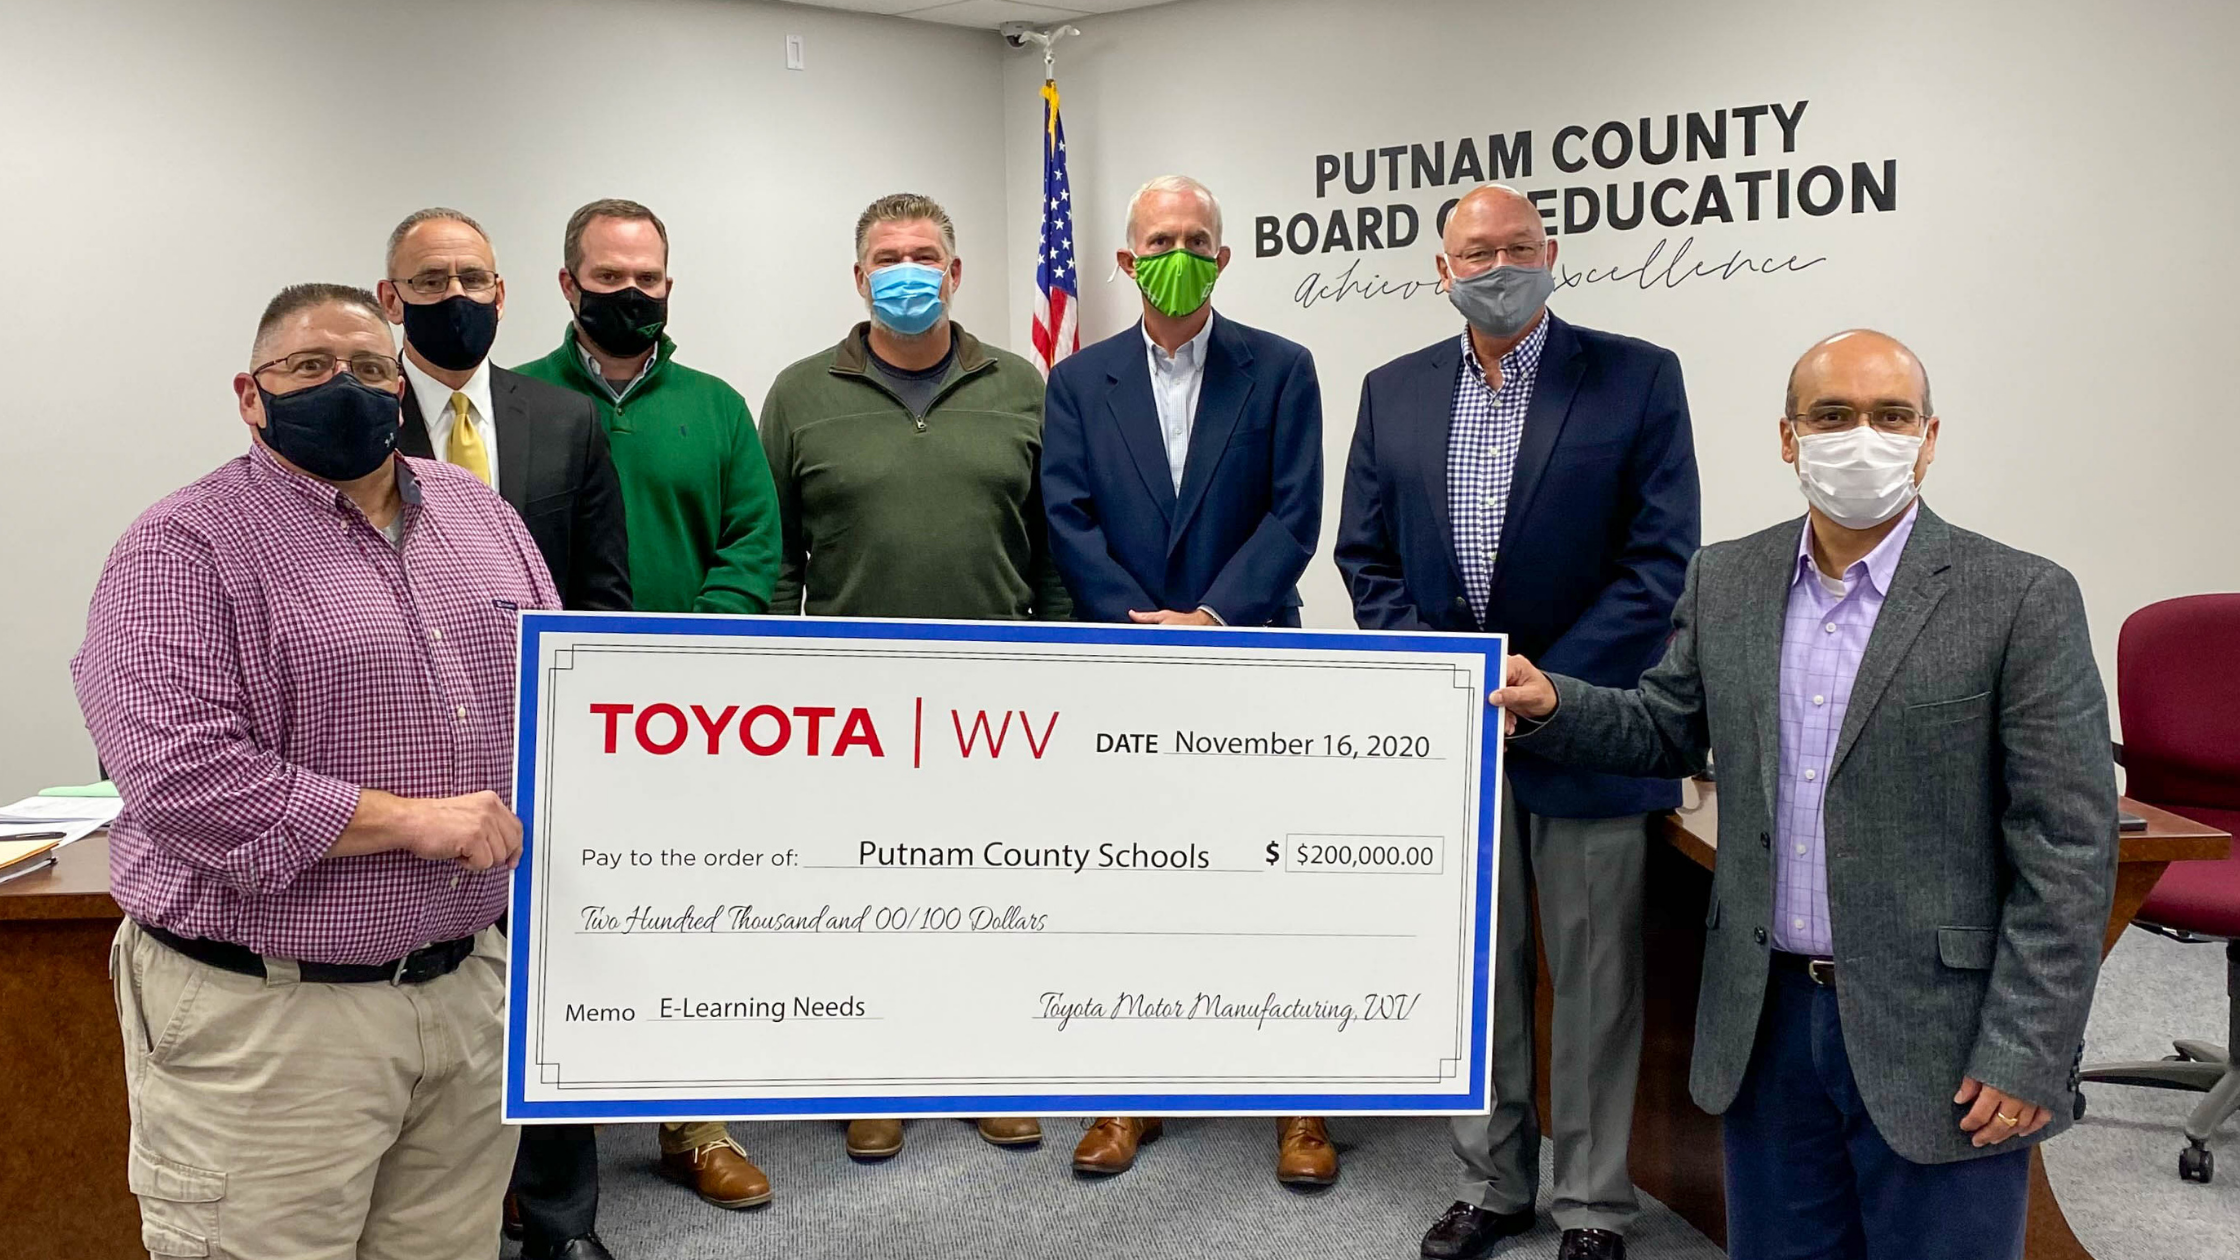 Toyota West Virginia President, Srini Matam, presents TOYOTA E-Learning Grant to Putnam County Schools at the Putnam County Board of Education Meeting on Monday, November 16, 2020. Thank you TOYOTA!